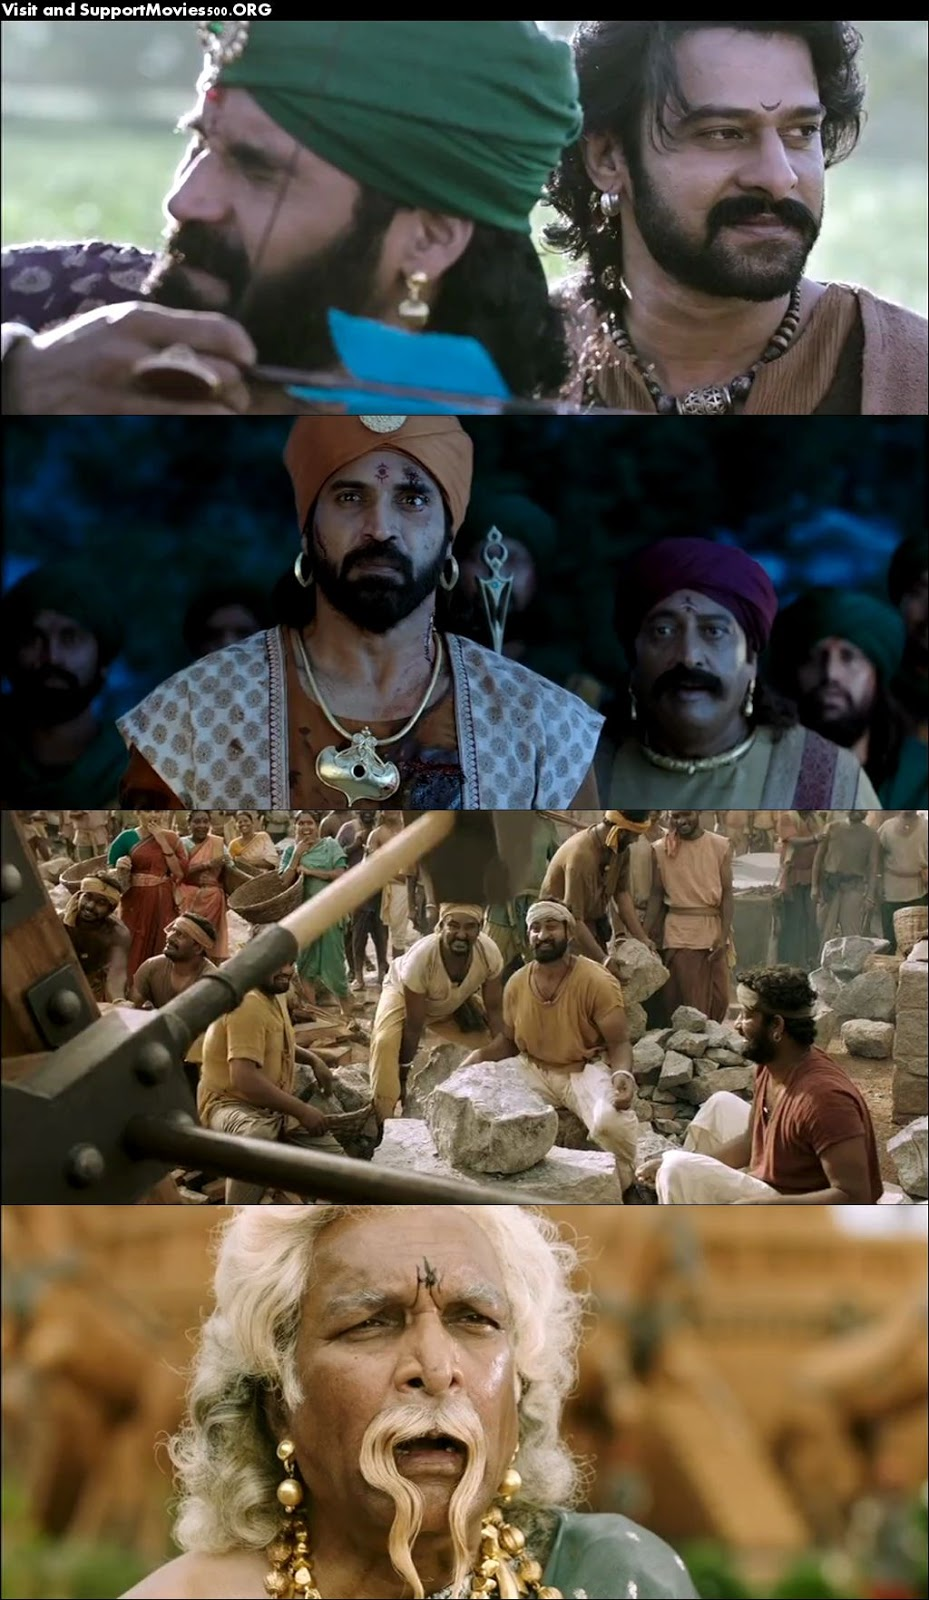 Baahubali 2 The Conclusion 2017 Full HD Movie DVD Quality Download at bcvwop.biz